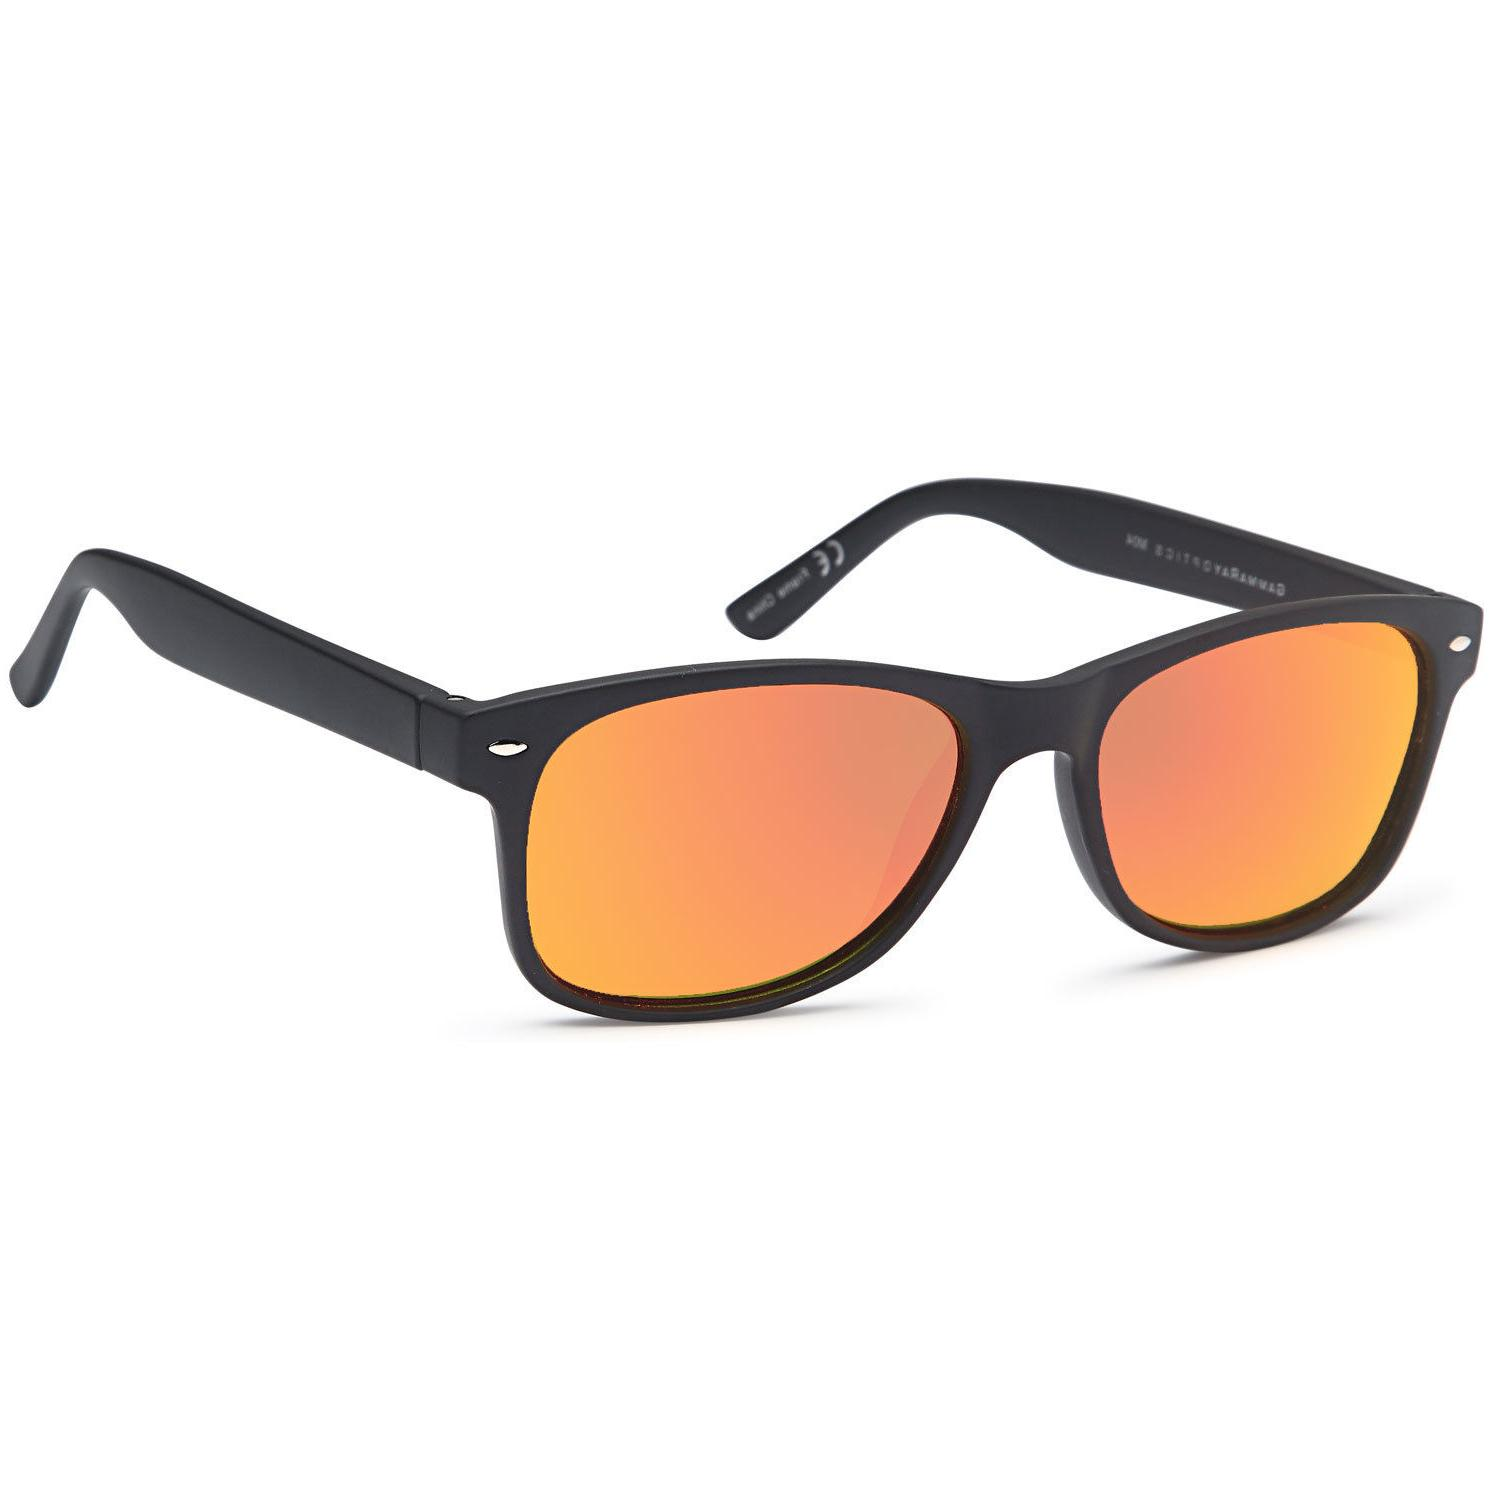 Gamma Ray Classic Style Sunglasses with Mirror